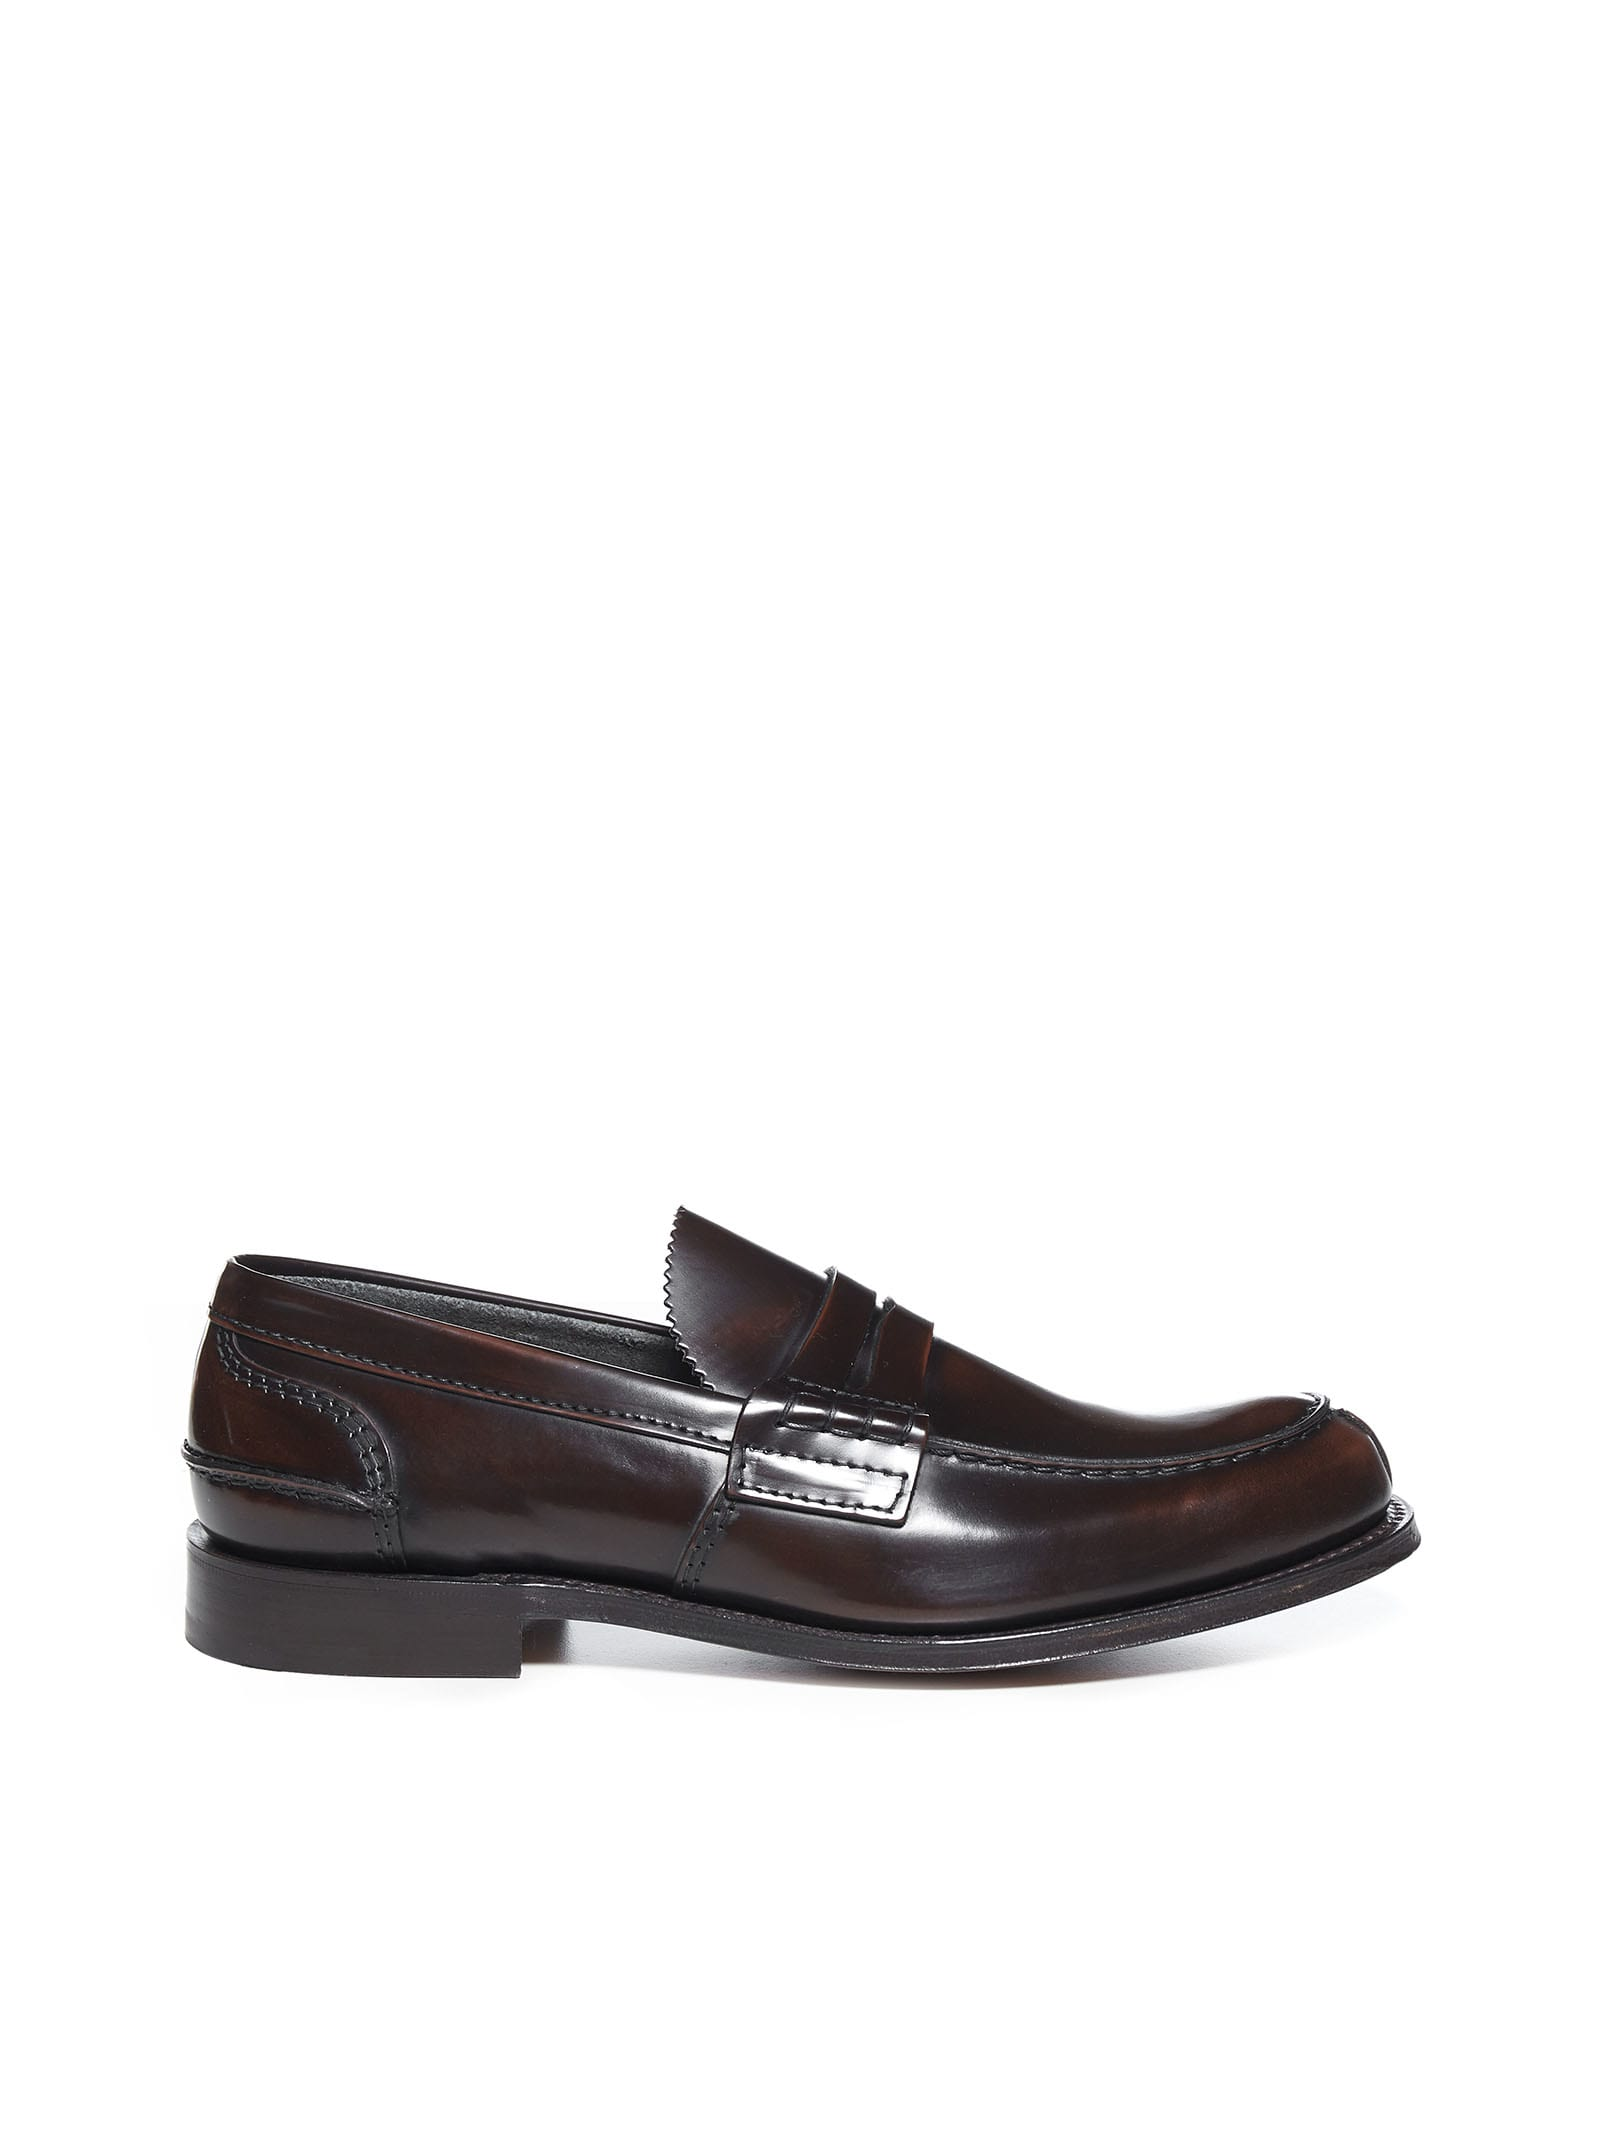 Churchs Loafers